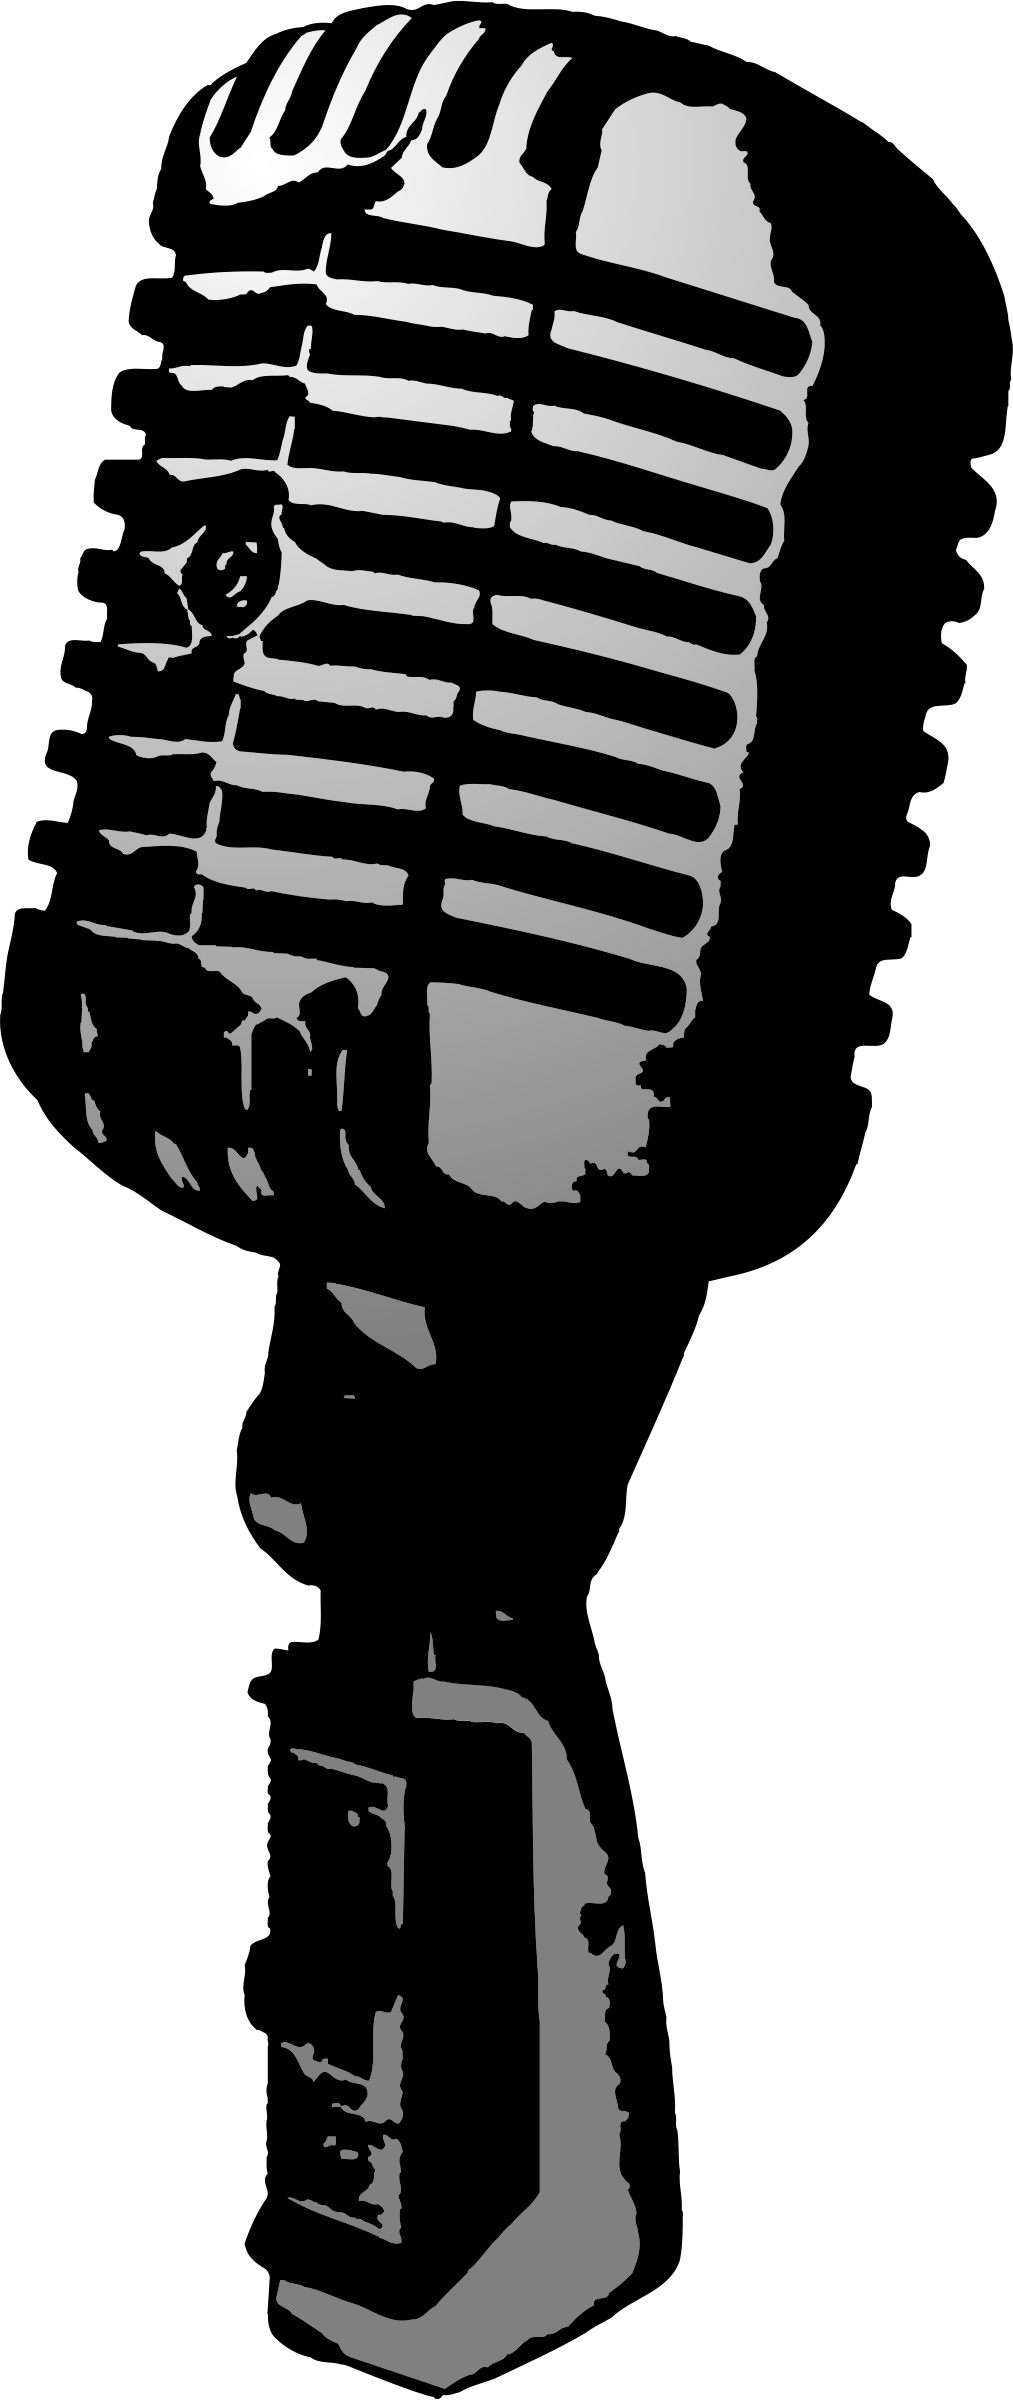 Clipart - Microphone - ClipArt Best - ClipArt Best Vintage Microphone Black And White